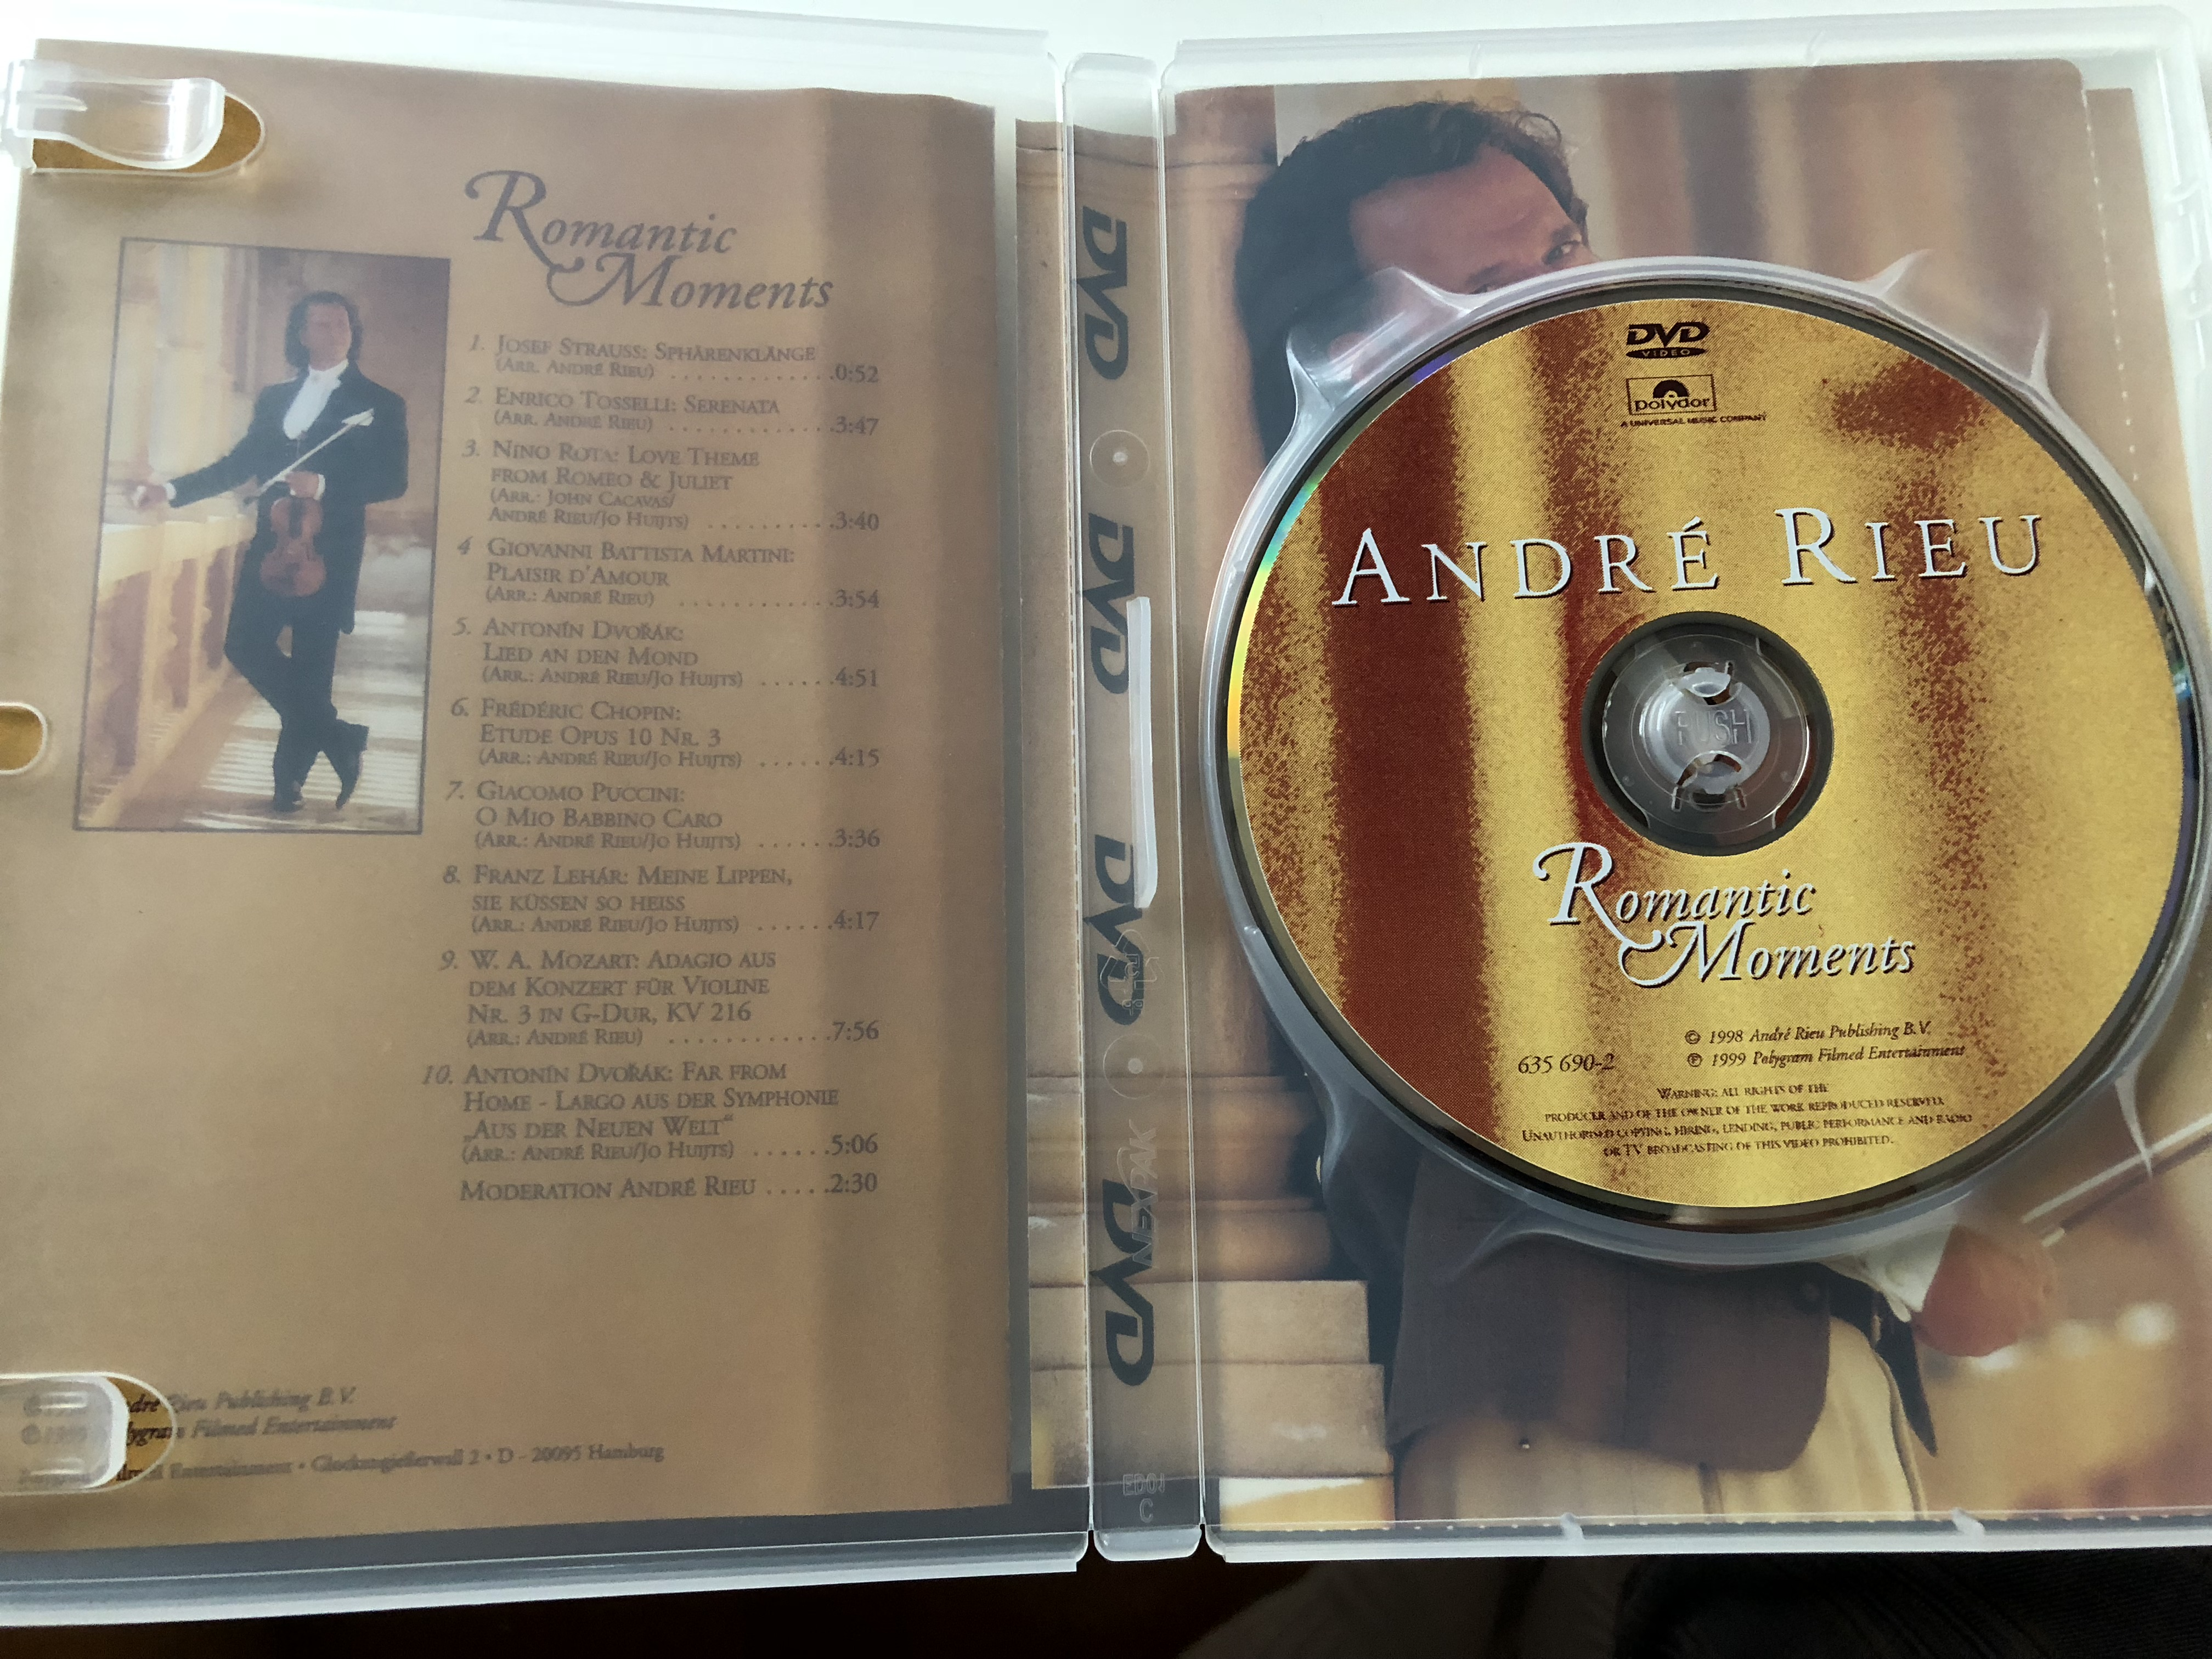 andr-rieu-romantic-moments-dvd-1999-sph-renkl-nge-music-of-the-spheres-anton-n-dvo-k-lied-an-den-mond-giacomo-puccini-o-mio-babbino-caro-3-.jpg